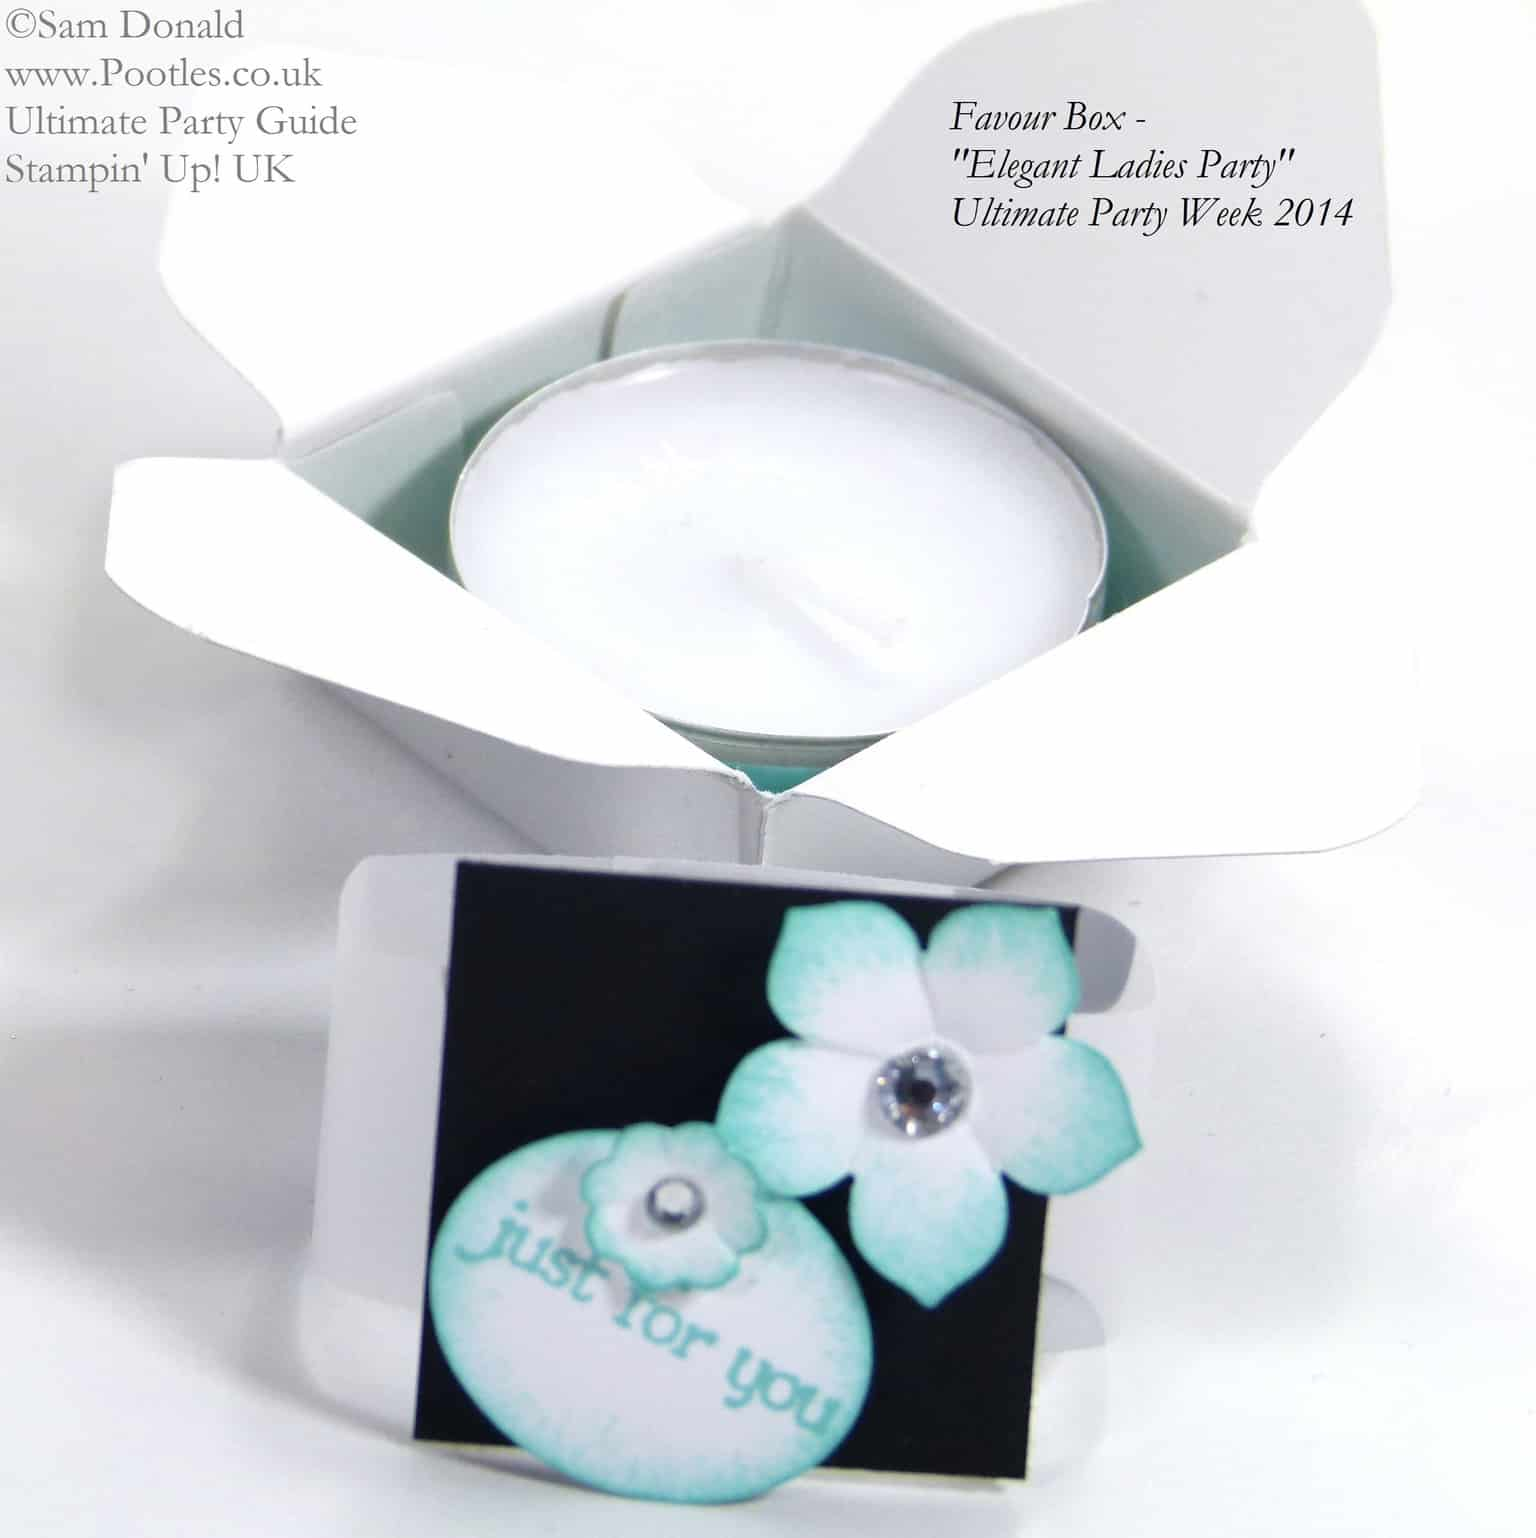 POOTLES Stampin Up UK Ultimate Party Week.  Favour Box open. ELEGANT LADIES THEME